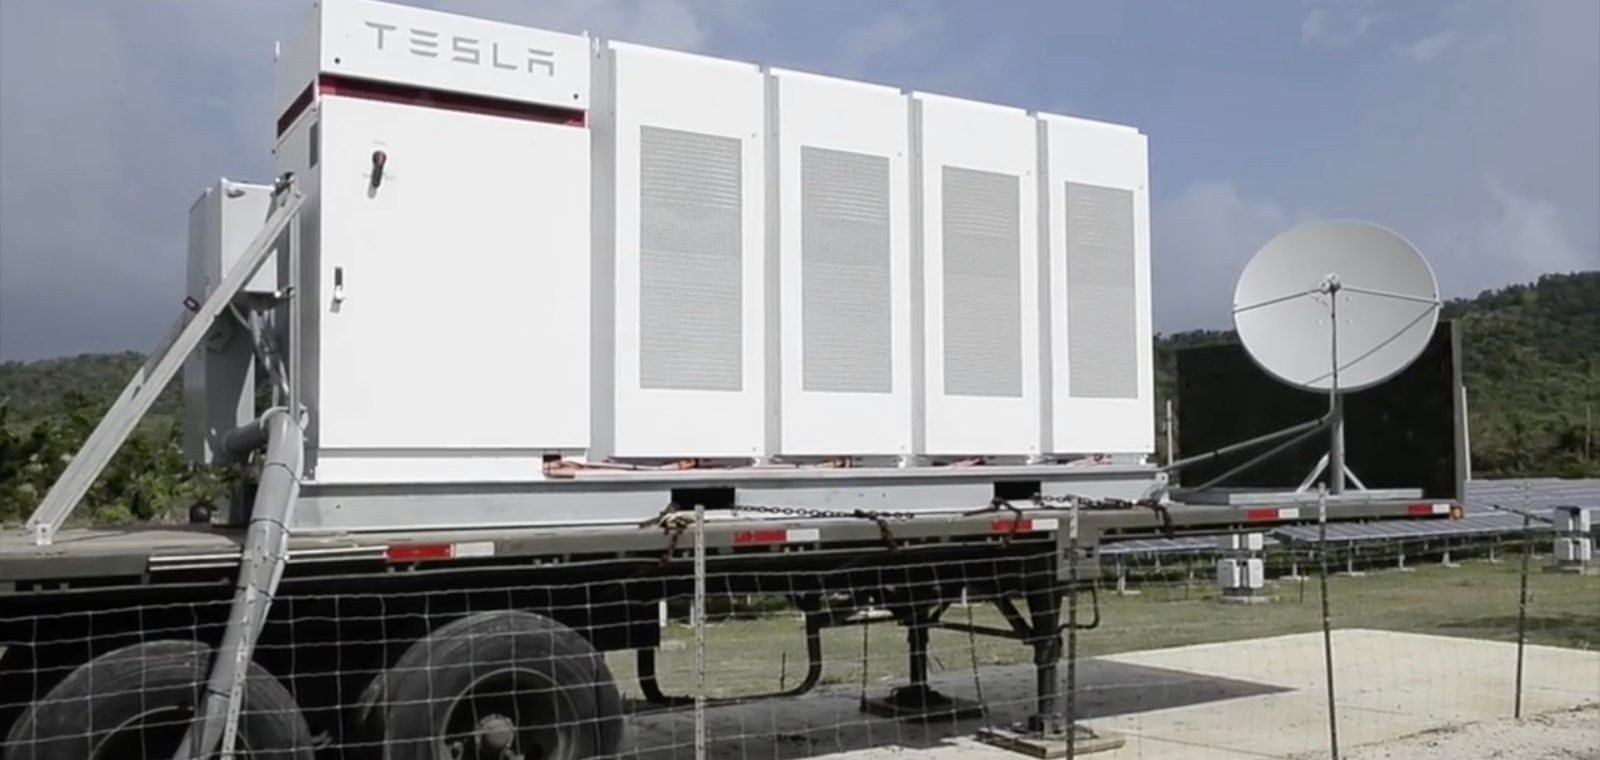 Tesla Deploys 6 Battery Projects In Order To Power Two Islands The Simple Electric Motor Powered By Batteries Connected Series Puerto Rico More Come